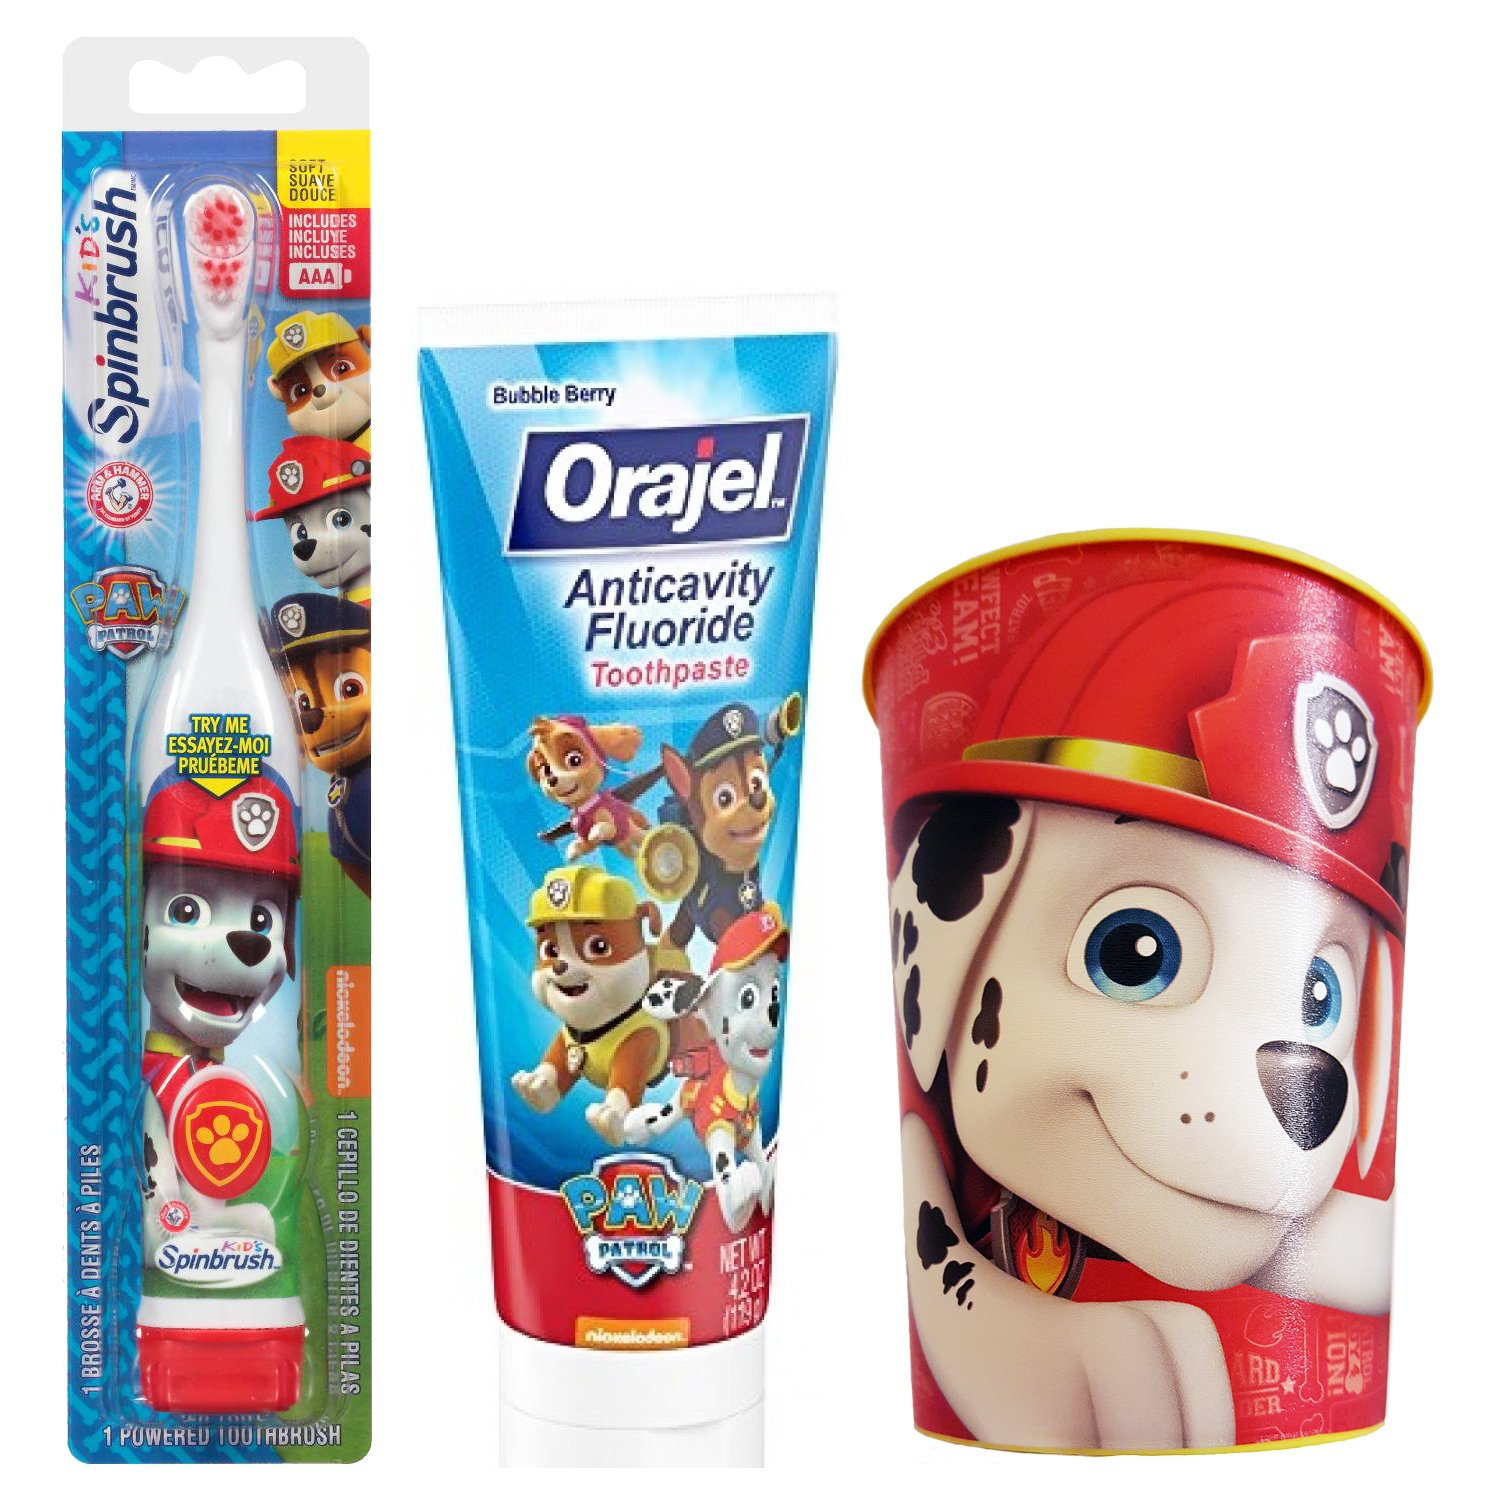 Amazon.com: Paw Patrol Marshall Toothbrush & Toothpaste Bundle: 3 Items - Spinbrush Toothbrush, Orajel Bubble Berry Toothpaste, Kids Character Rinse Cup: ...